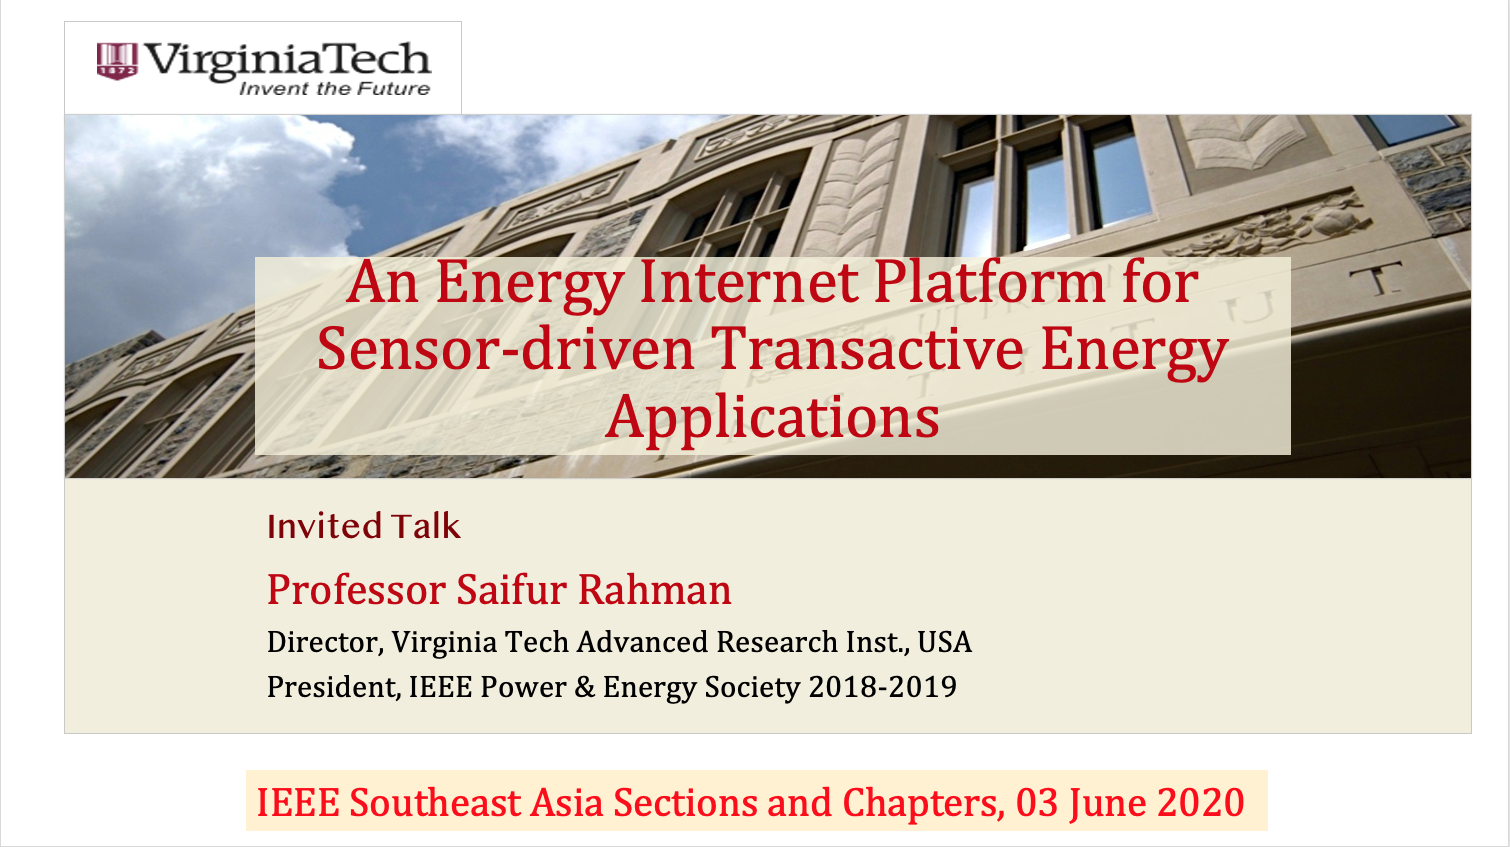 An Energy Internet Platform for Sensor-driven Transactive Energy Applications